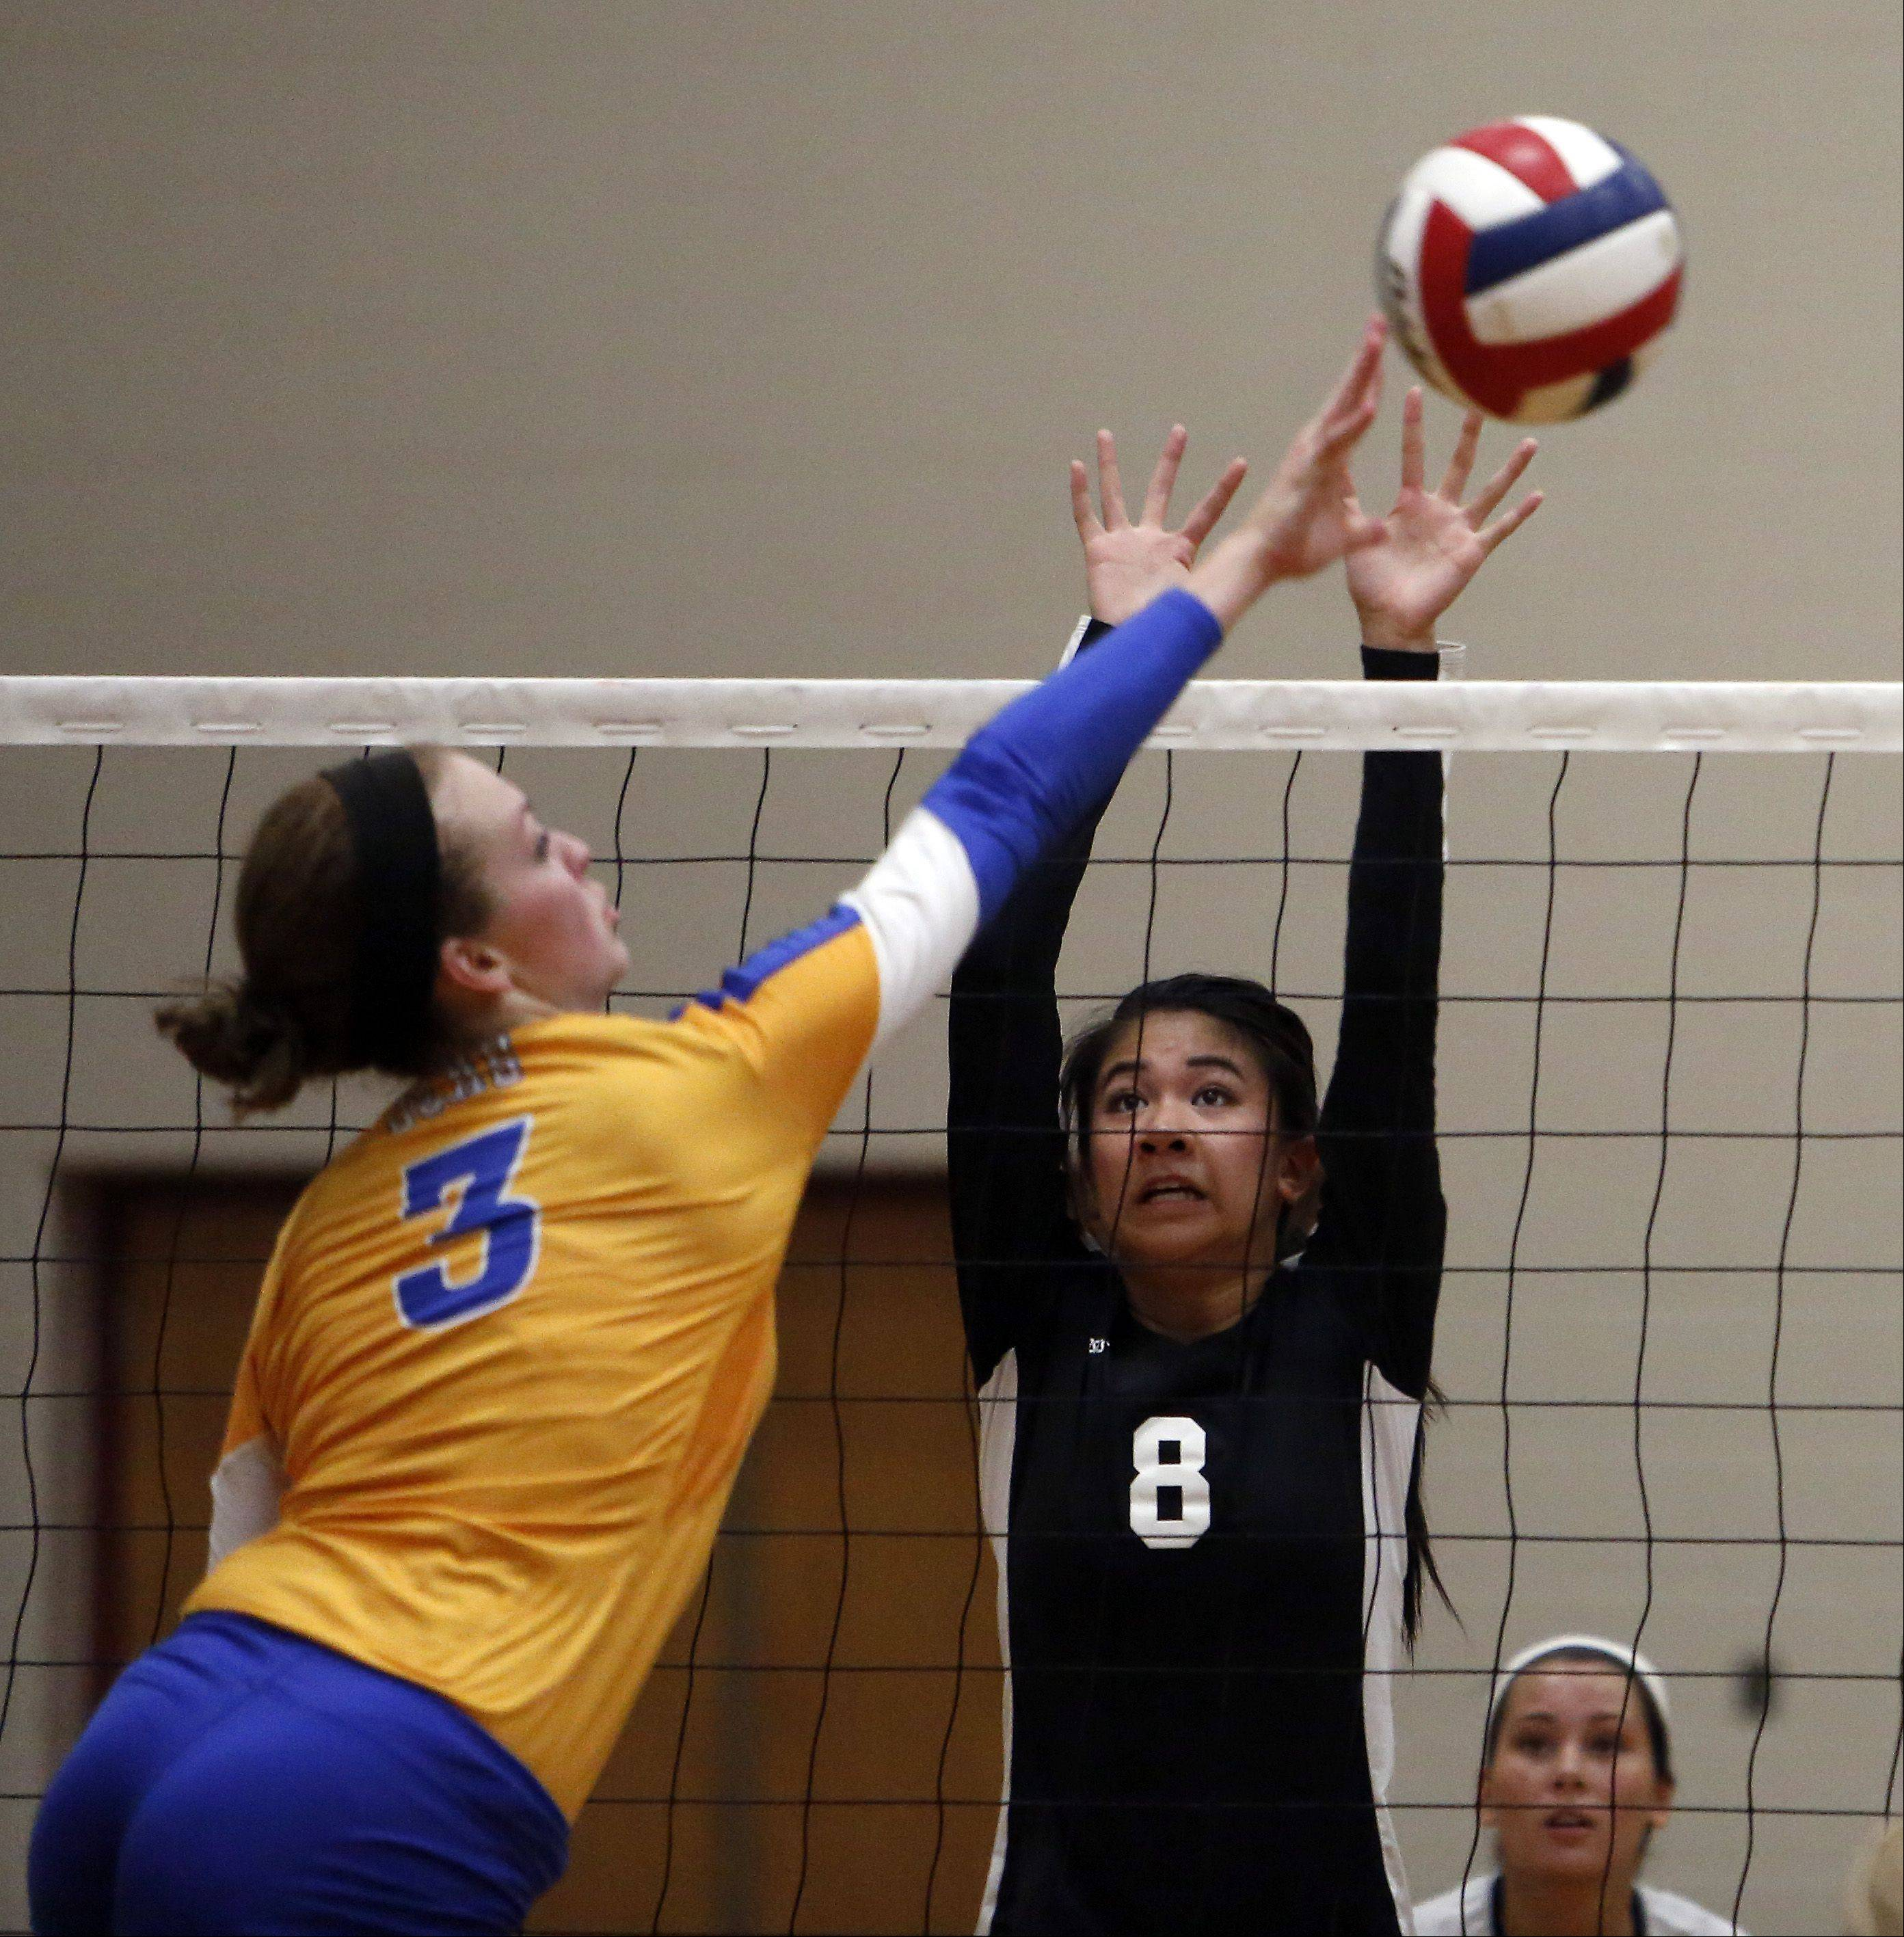 Joliet Central's Kelsey Frain tries to power a shot past a Glenbard North player during the 29th Annual Huntley High School Volleyball Tournament Saturday.